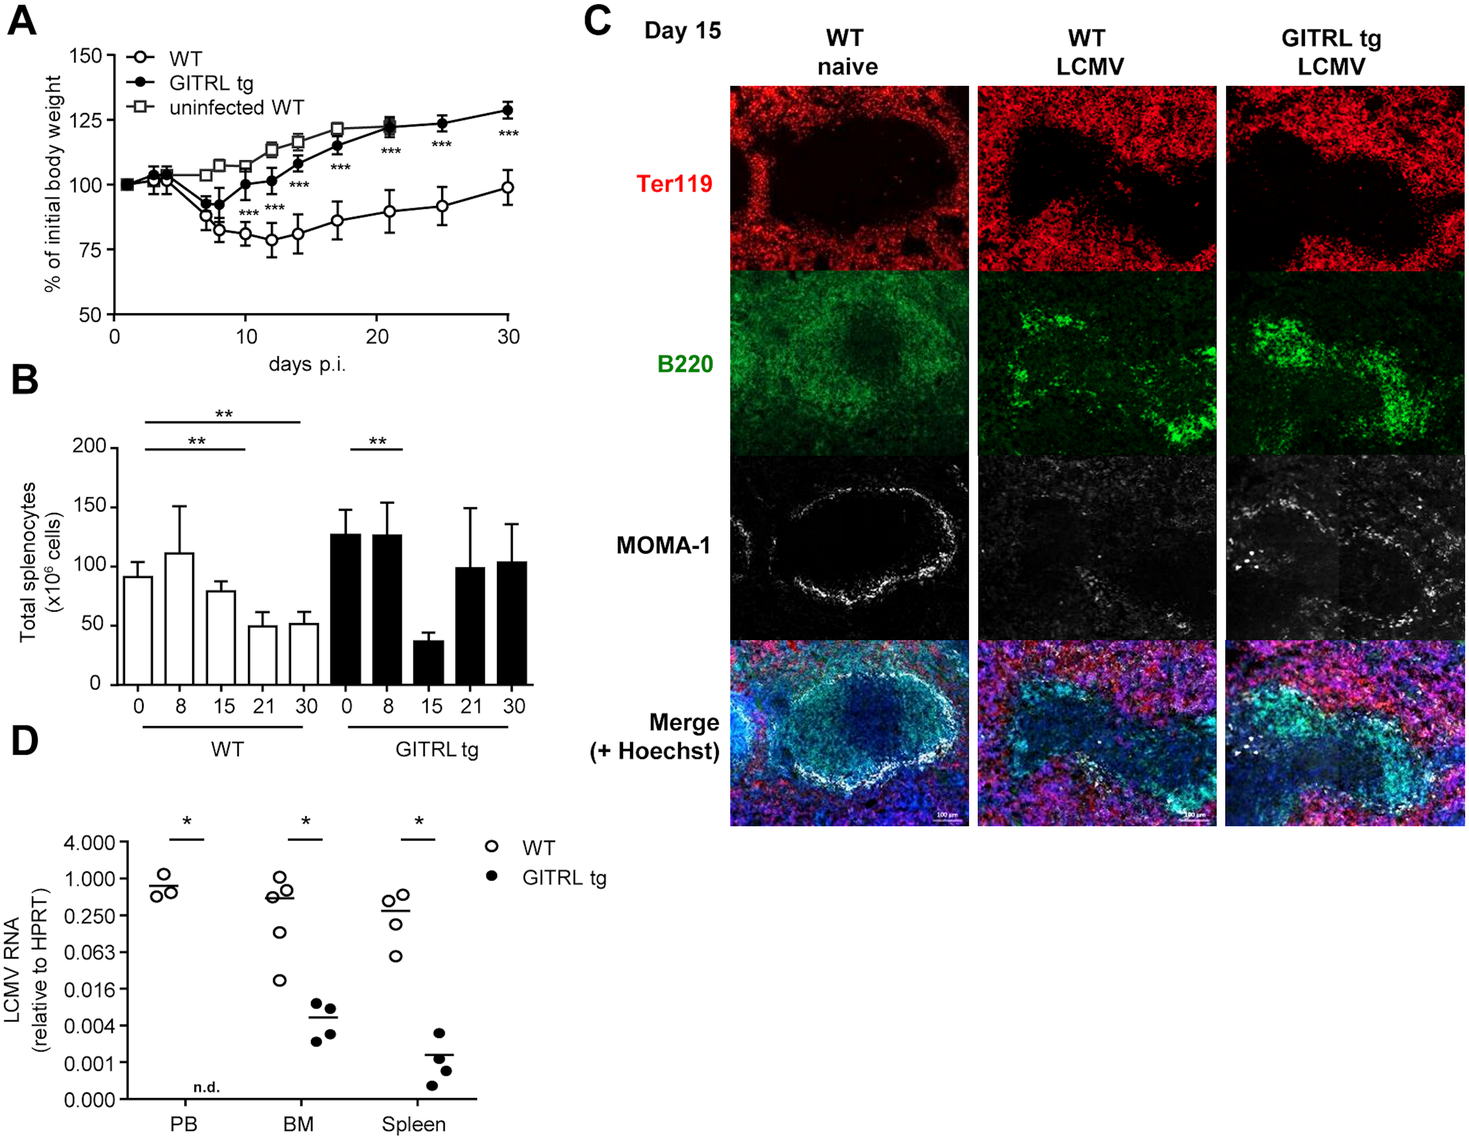 GITRL tg mice are protected against chronic LCMV infection.